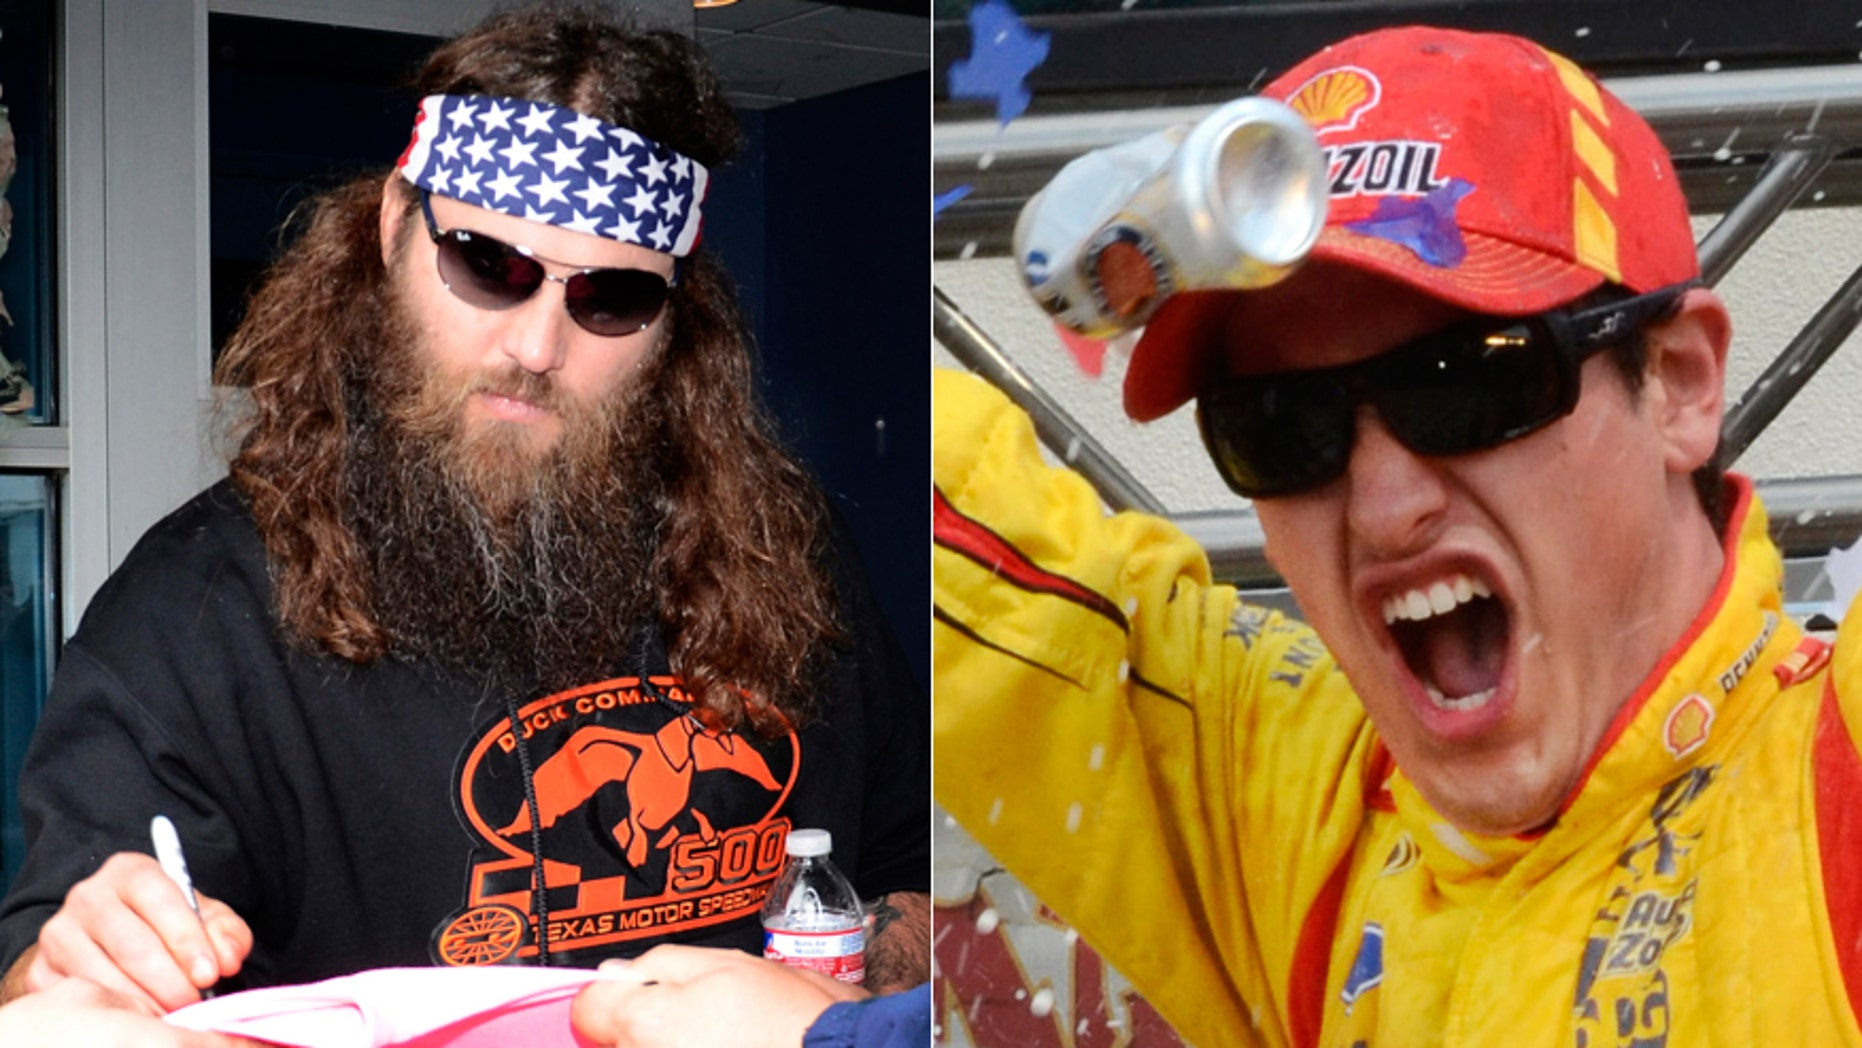 Duck Commander's Willie Robertson signs autographs at Texas Motor Speedway (L), Joey Logan celebrates his win in the Duck Commander 500 (R)